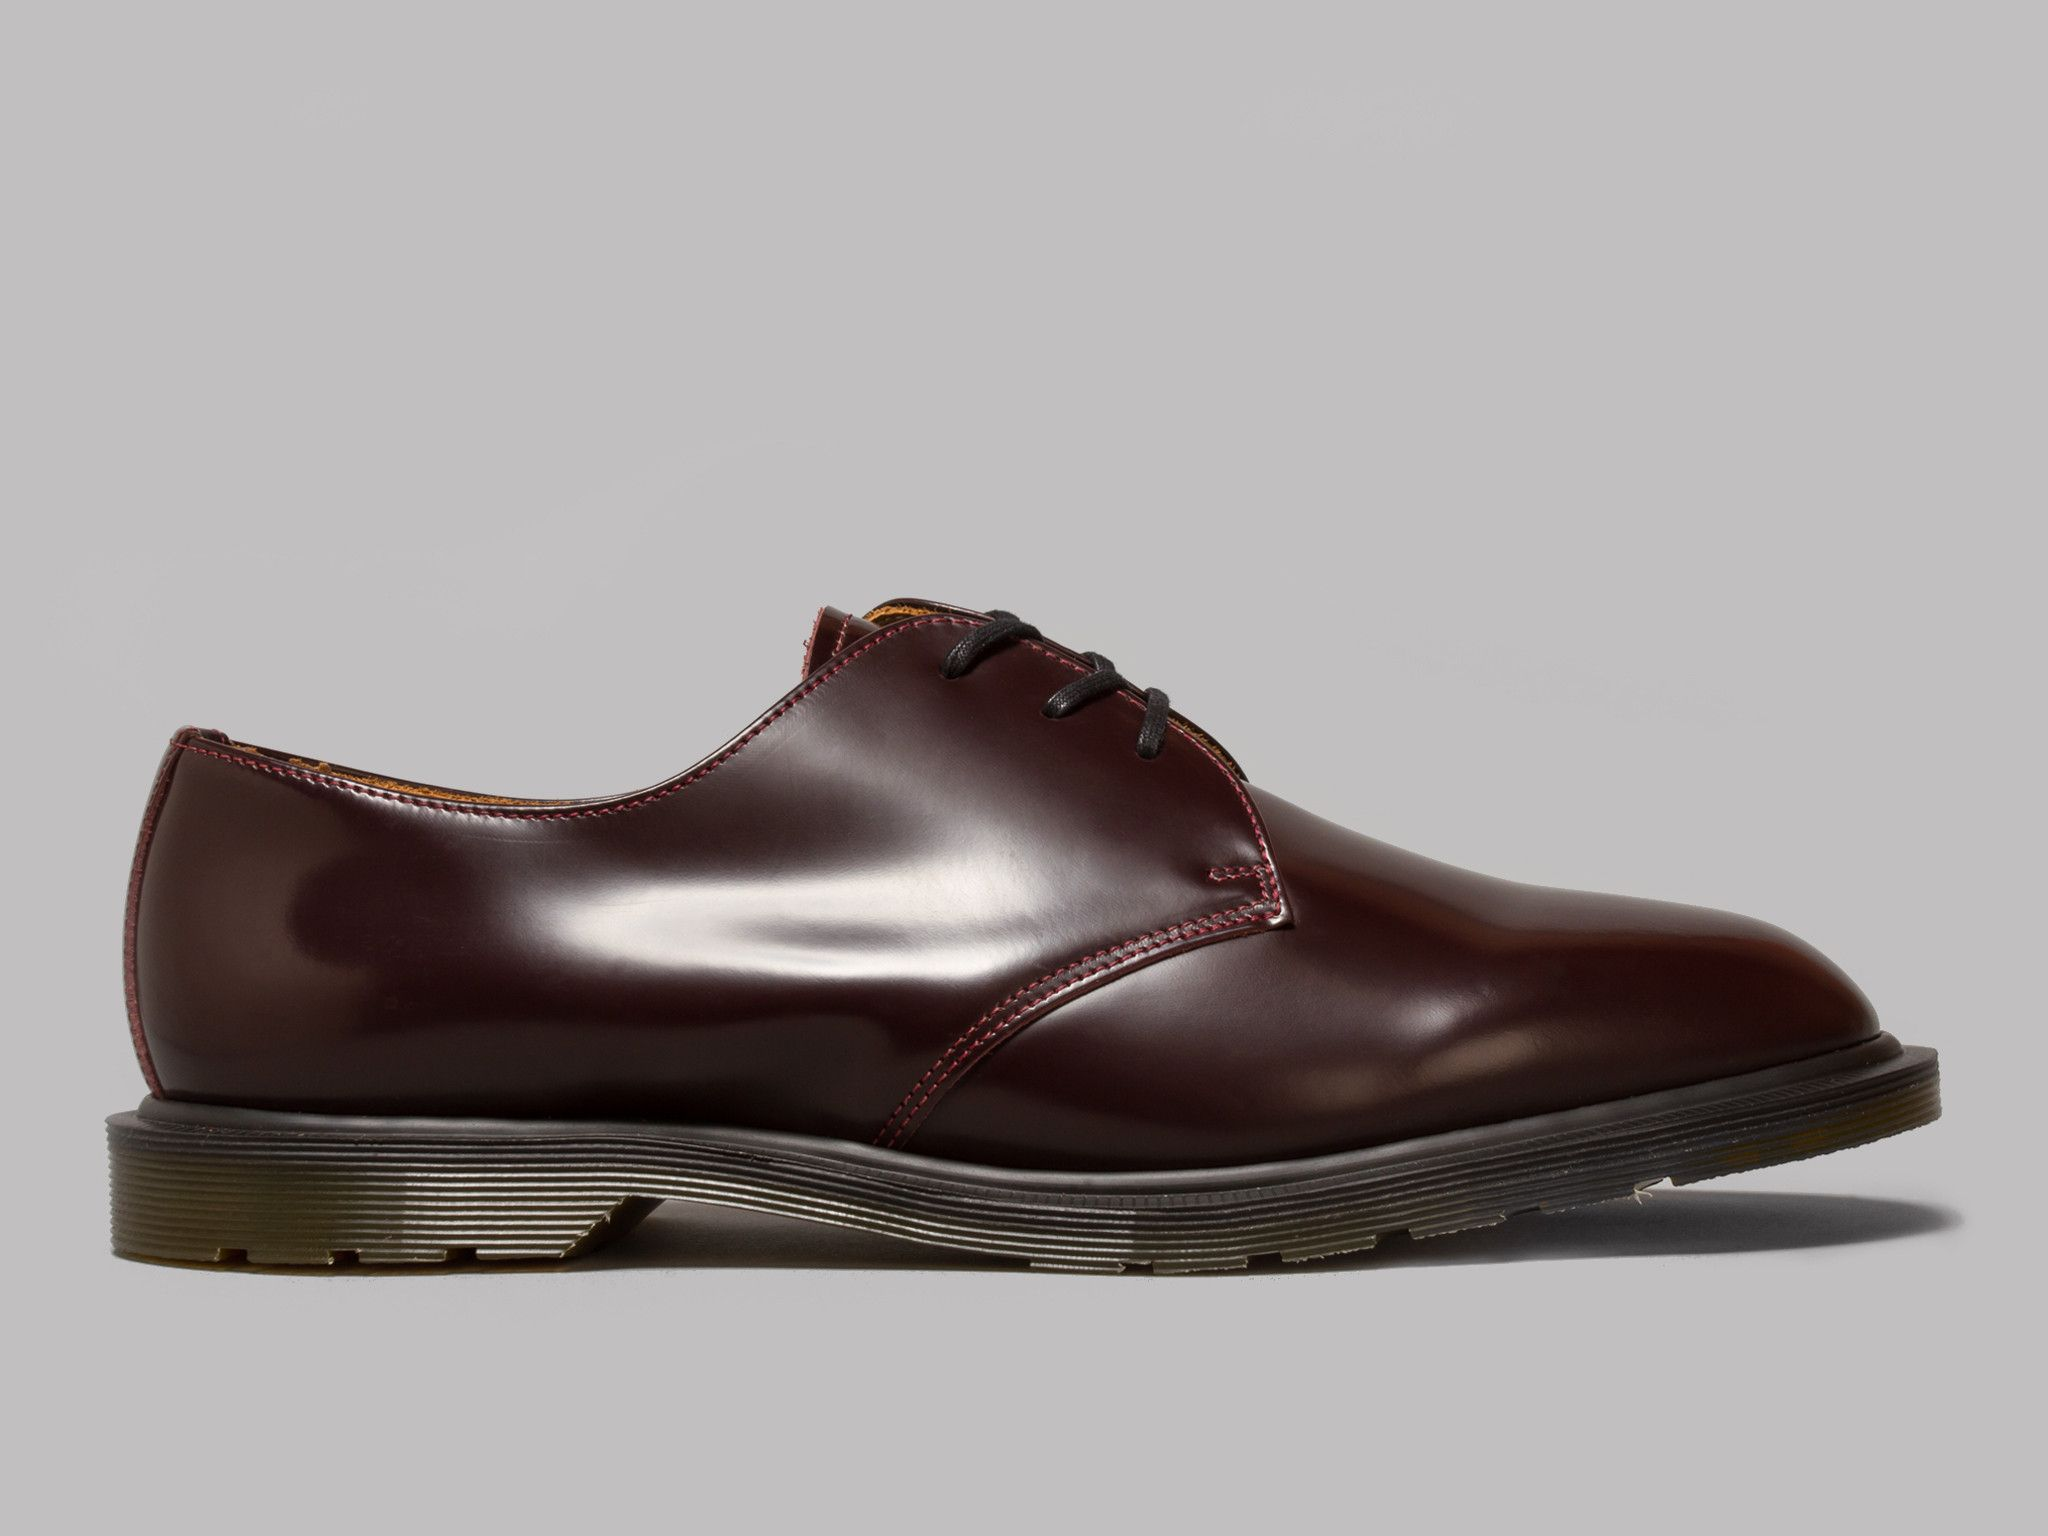 Dr Martens Made In England Steed Shoe Oxblood Polished Smooth